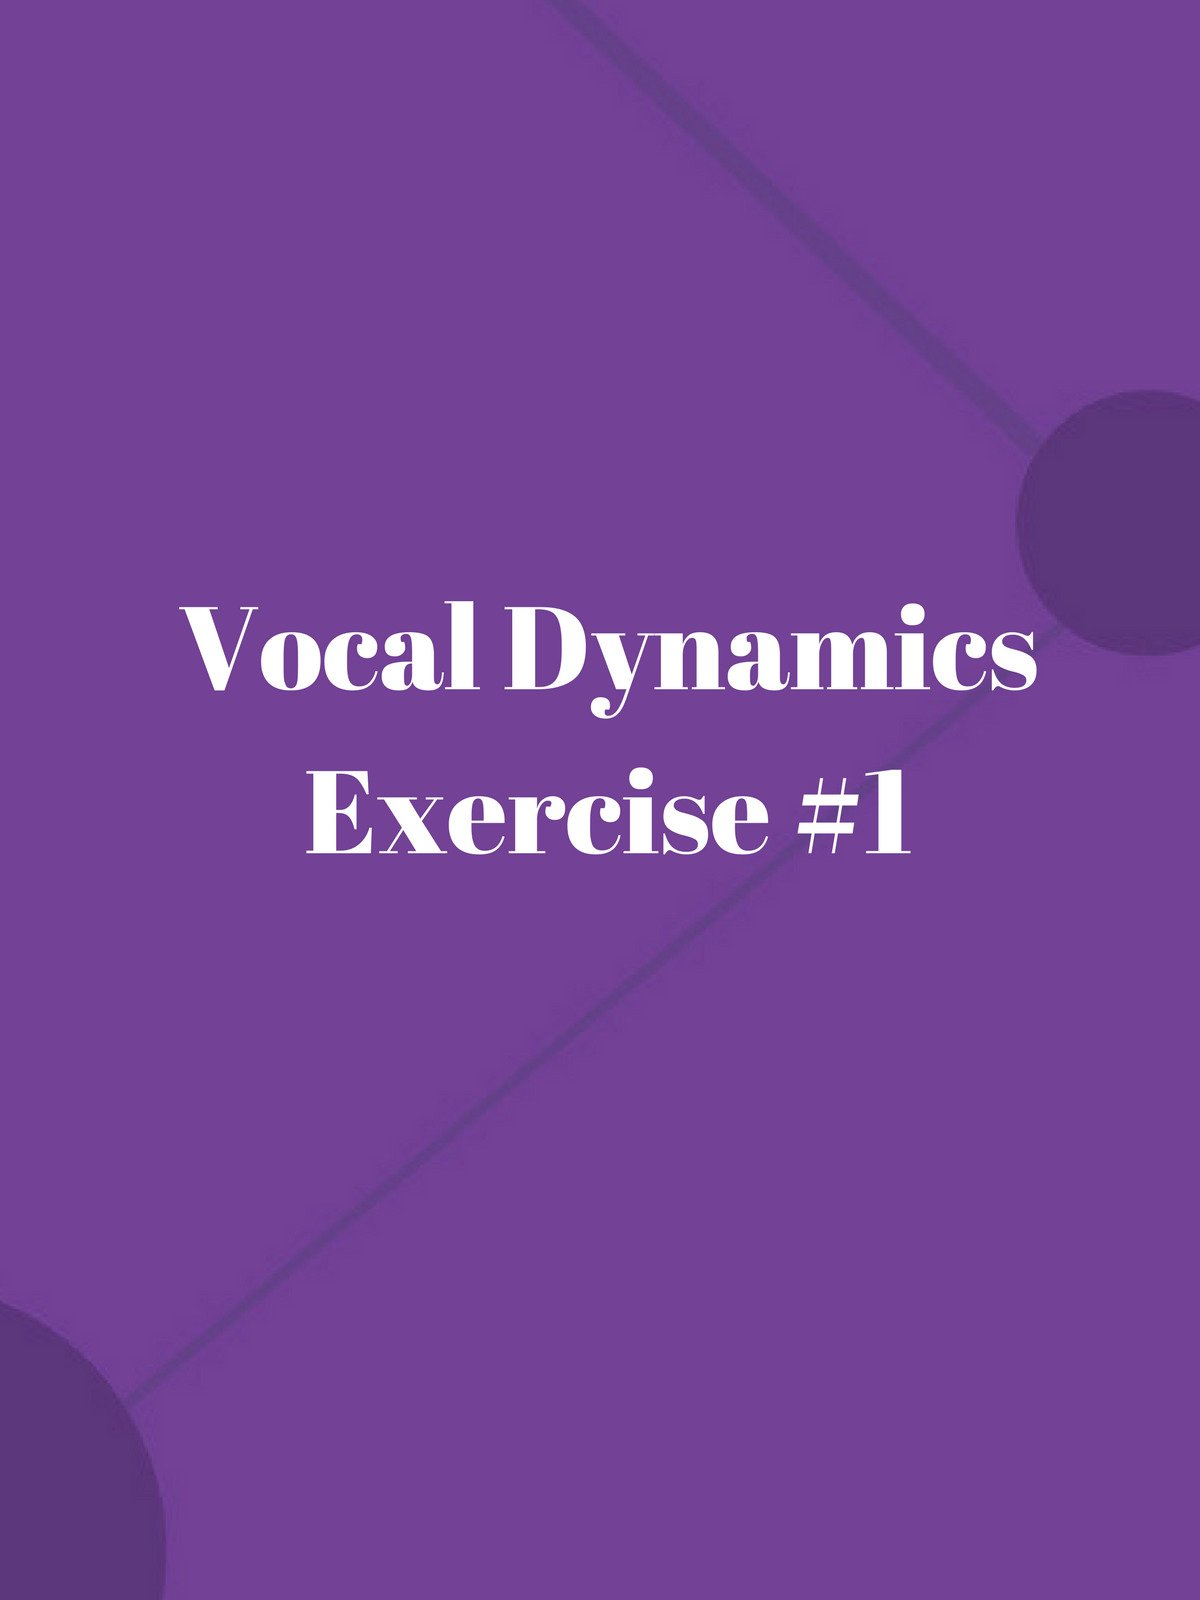 Vocal Dynamics Exercise #1